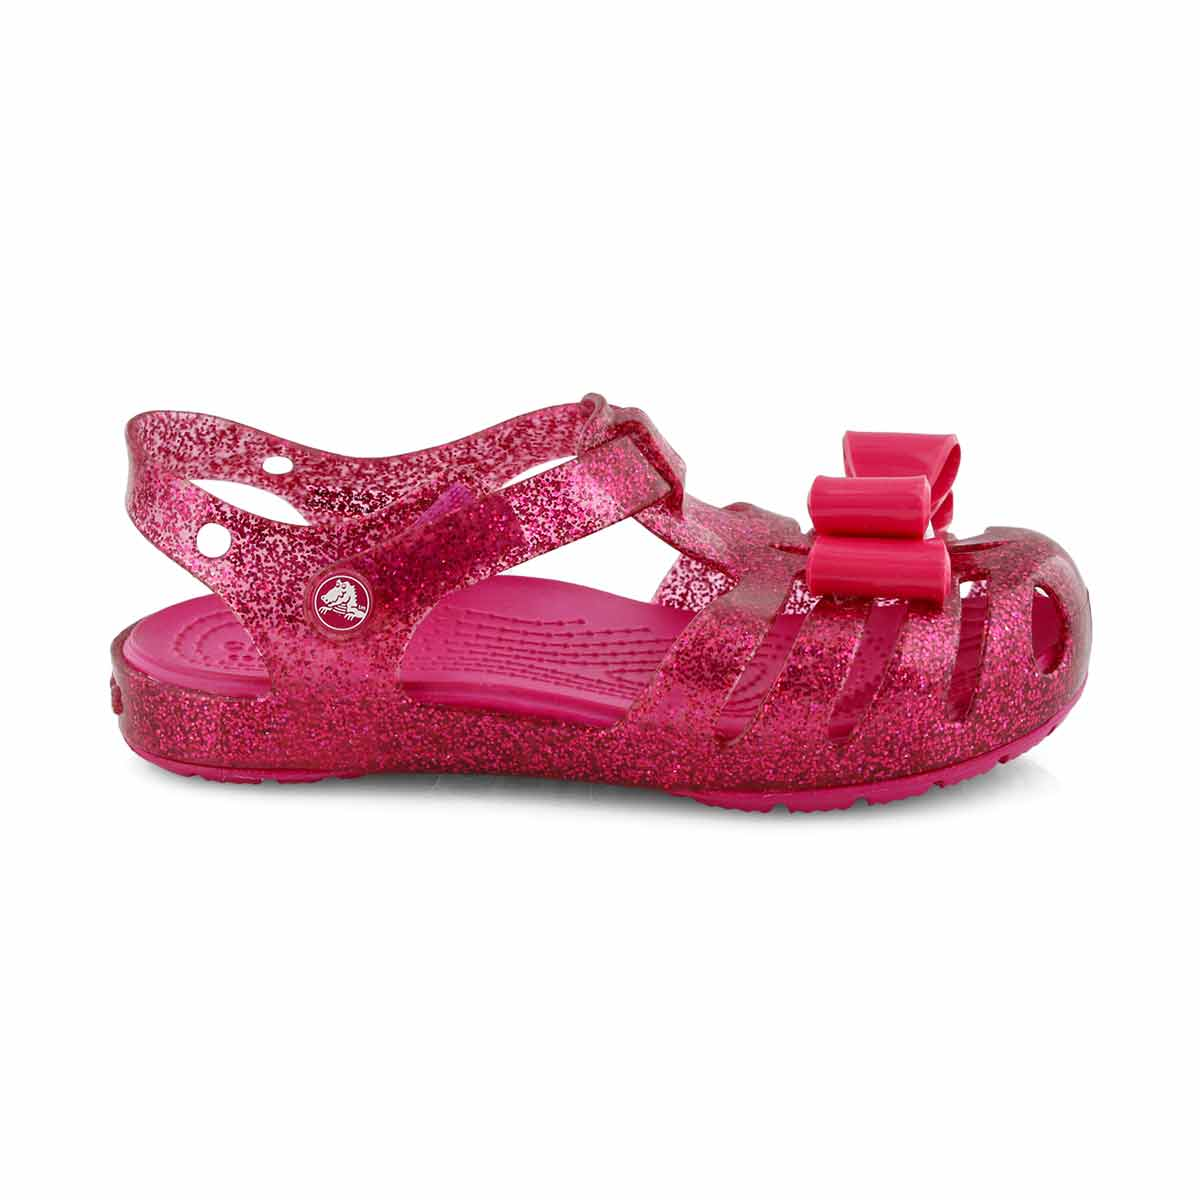 Grls Isabella Bow candy pink casual sndl